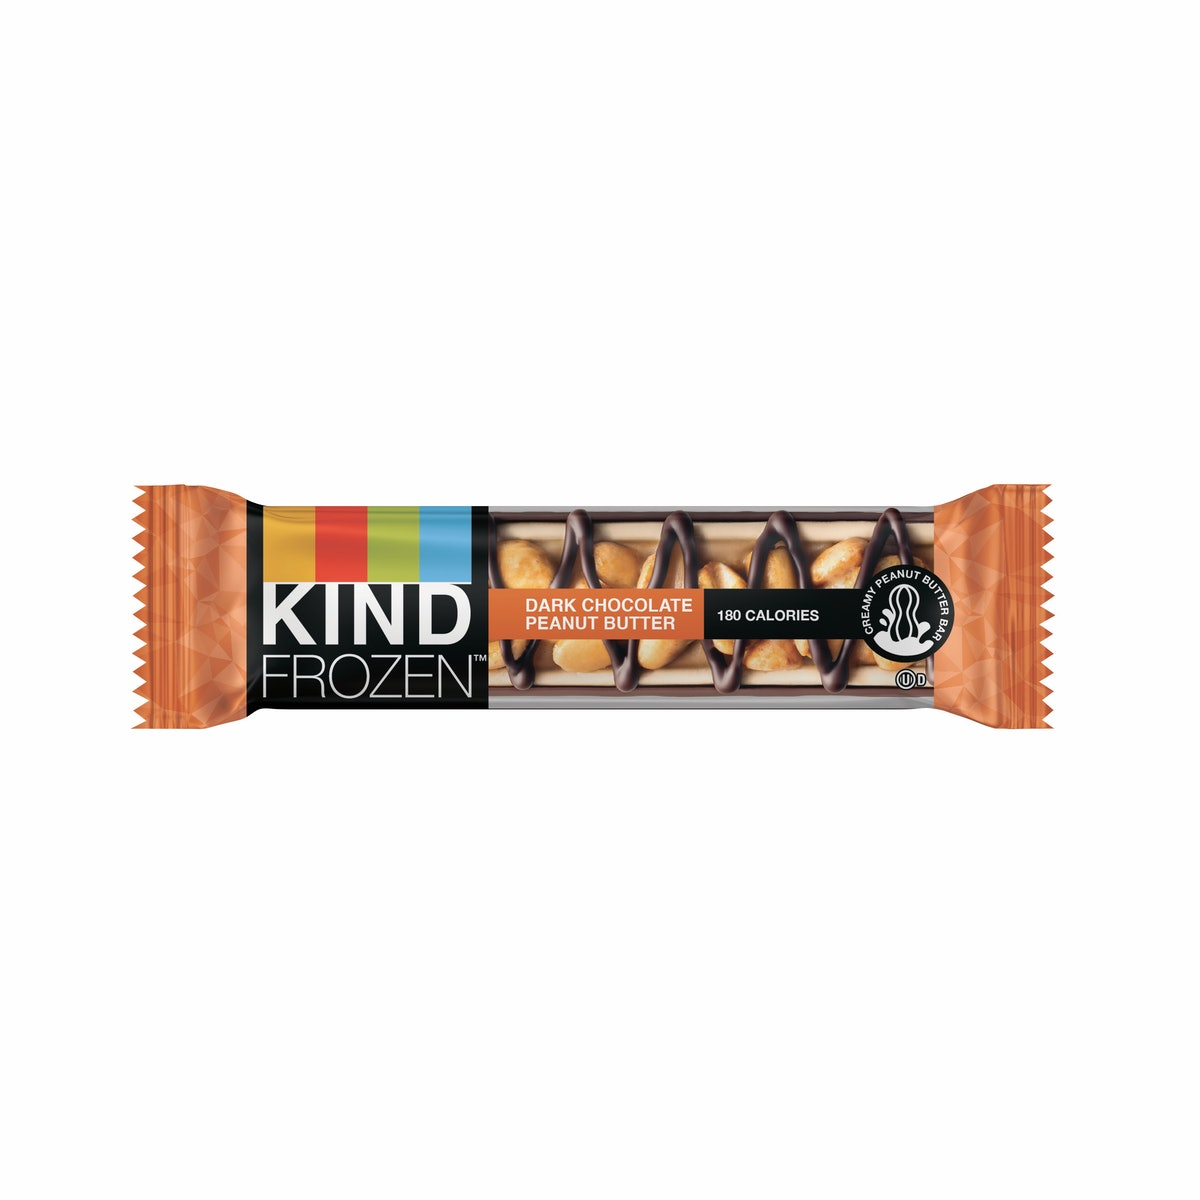 These Kind Frozen Bar flavors include 2 options, like Dark Chocolate Peanut Butter.